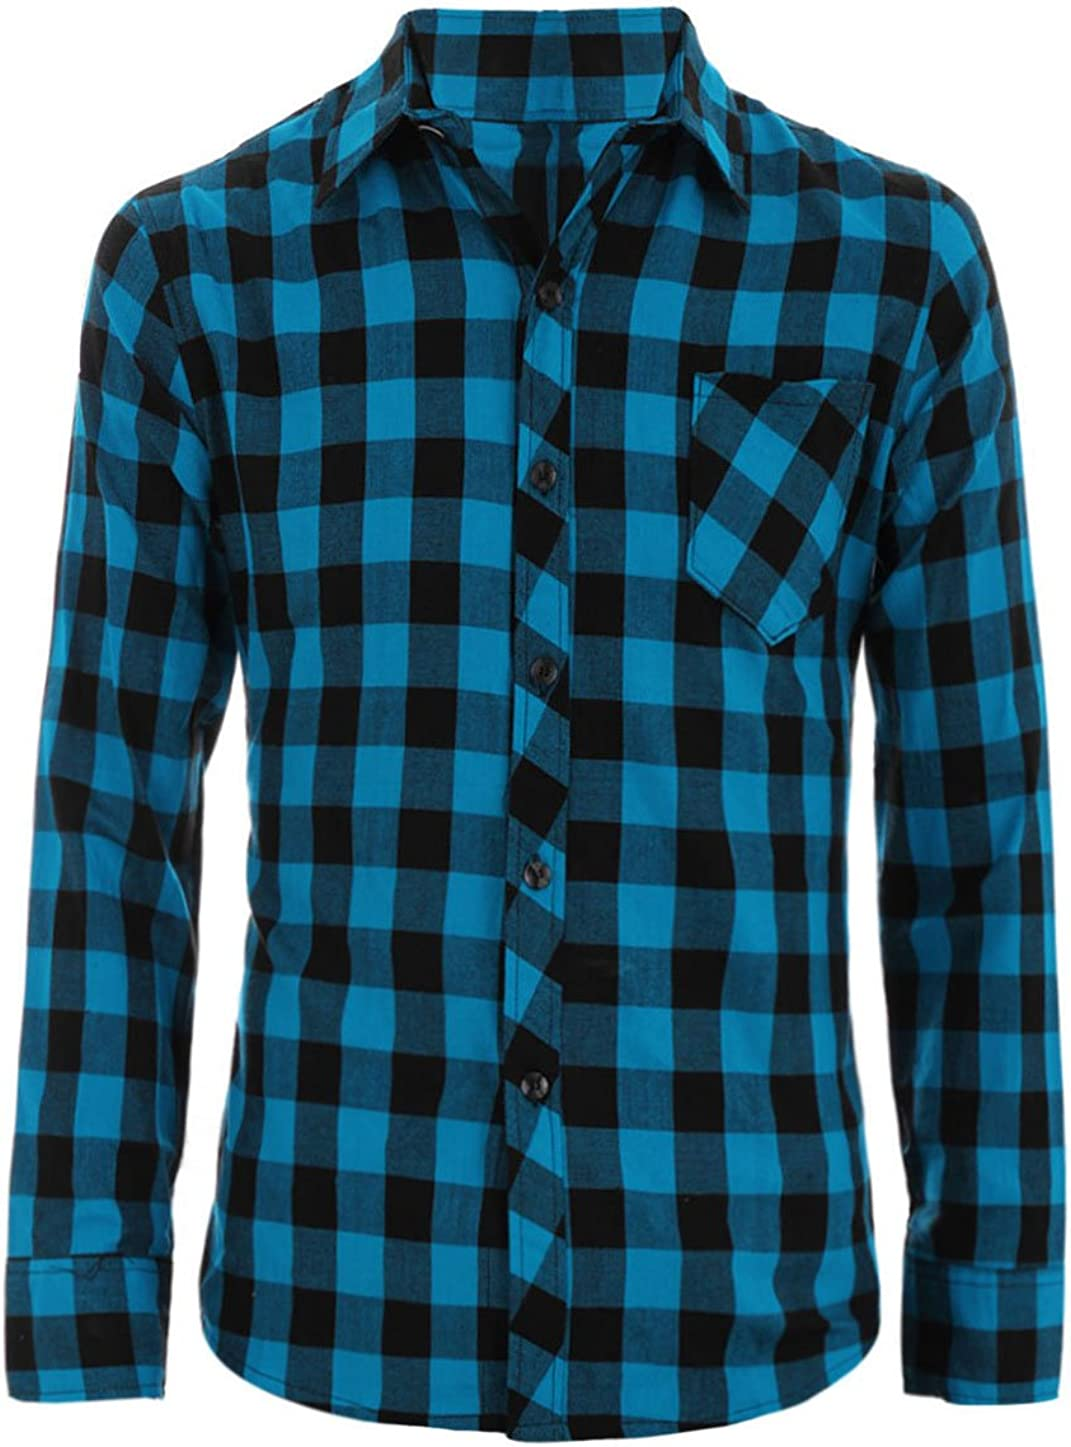 uxcell Men Casual Button Down Long Sleeves Flap Pockets Plaids Flannel Shirt